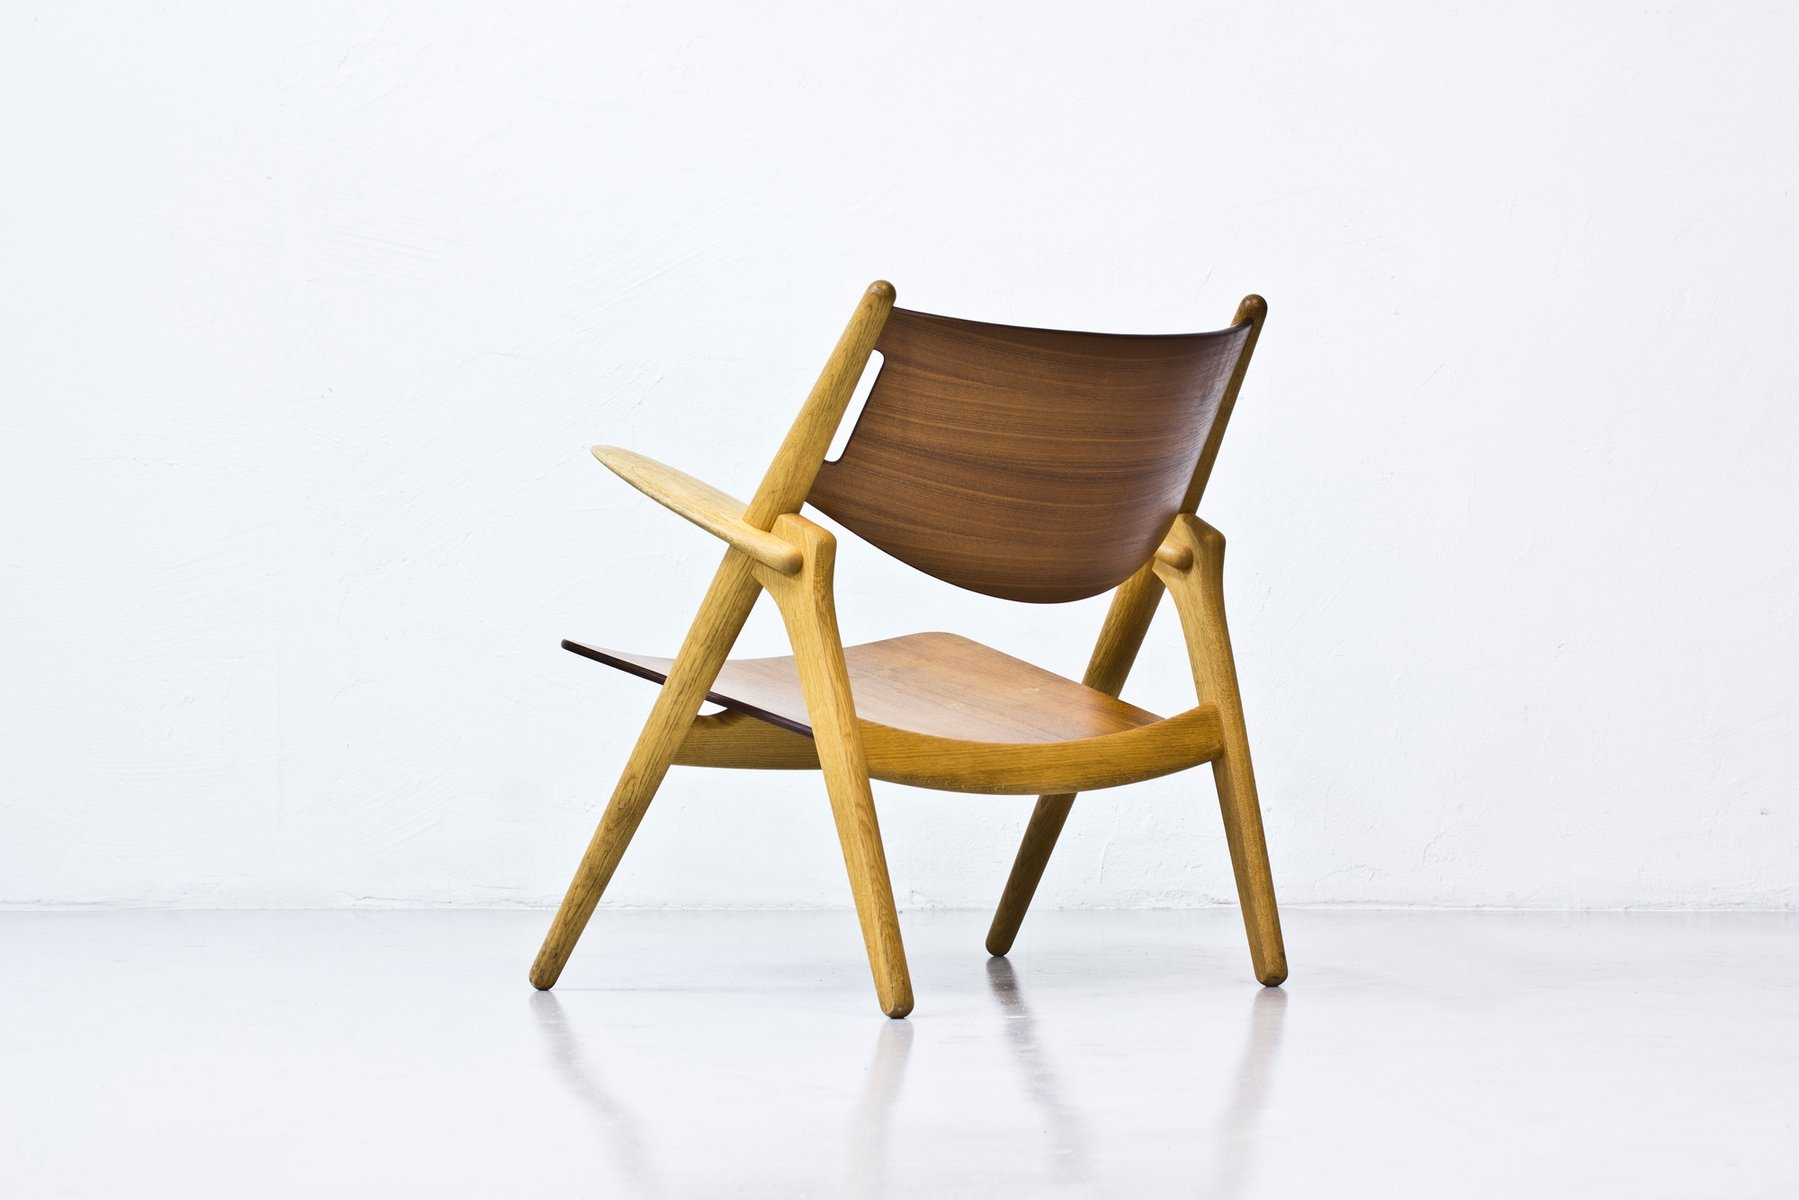 ch 28 easy chair by hans j wegner for sale at pamono. Black Bedroom Furniture Sets. Home Design Ideas